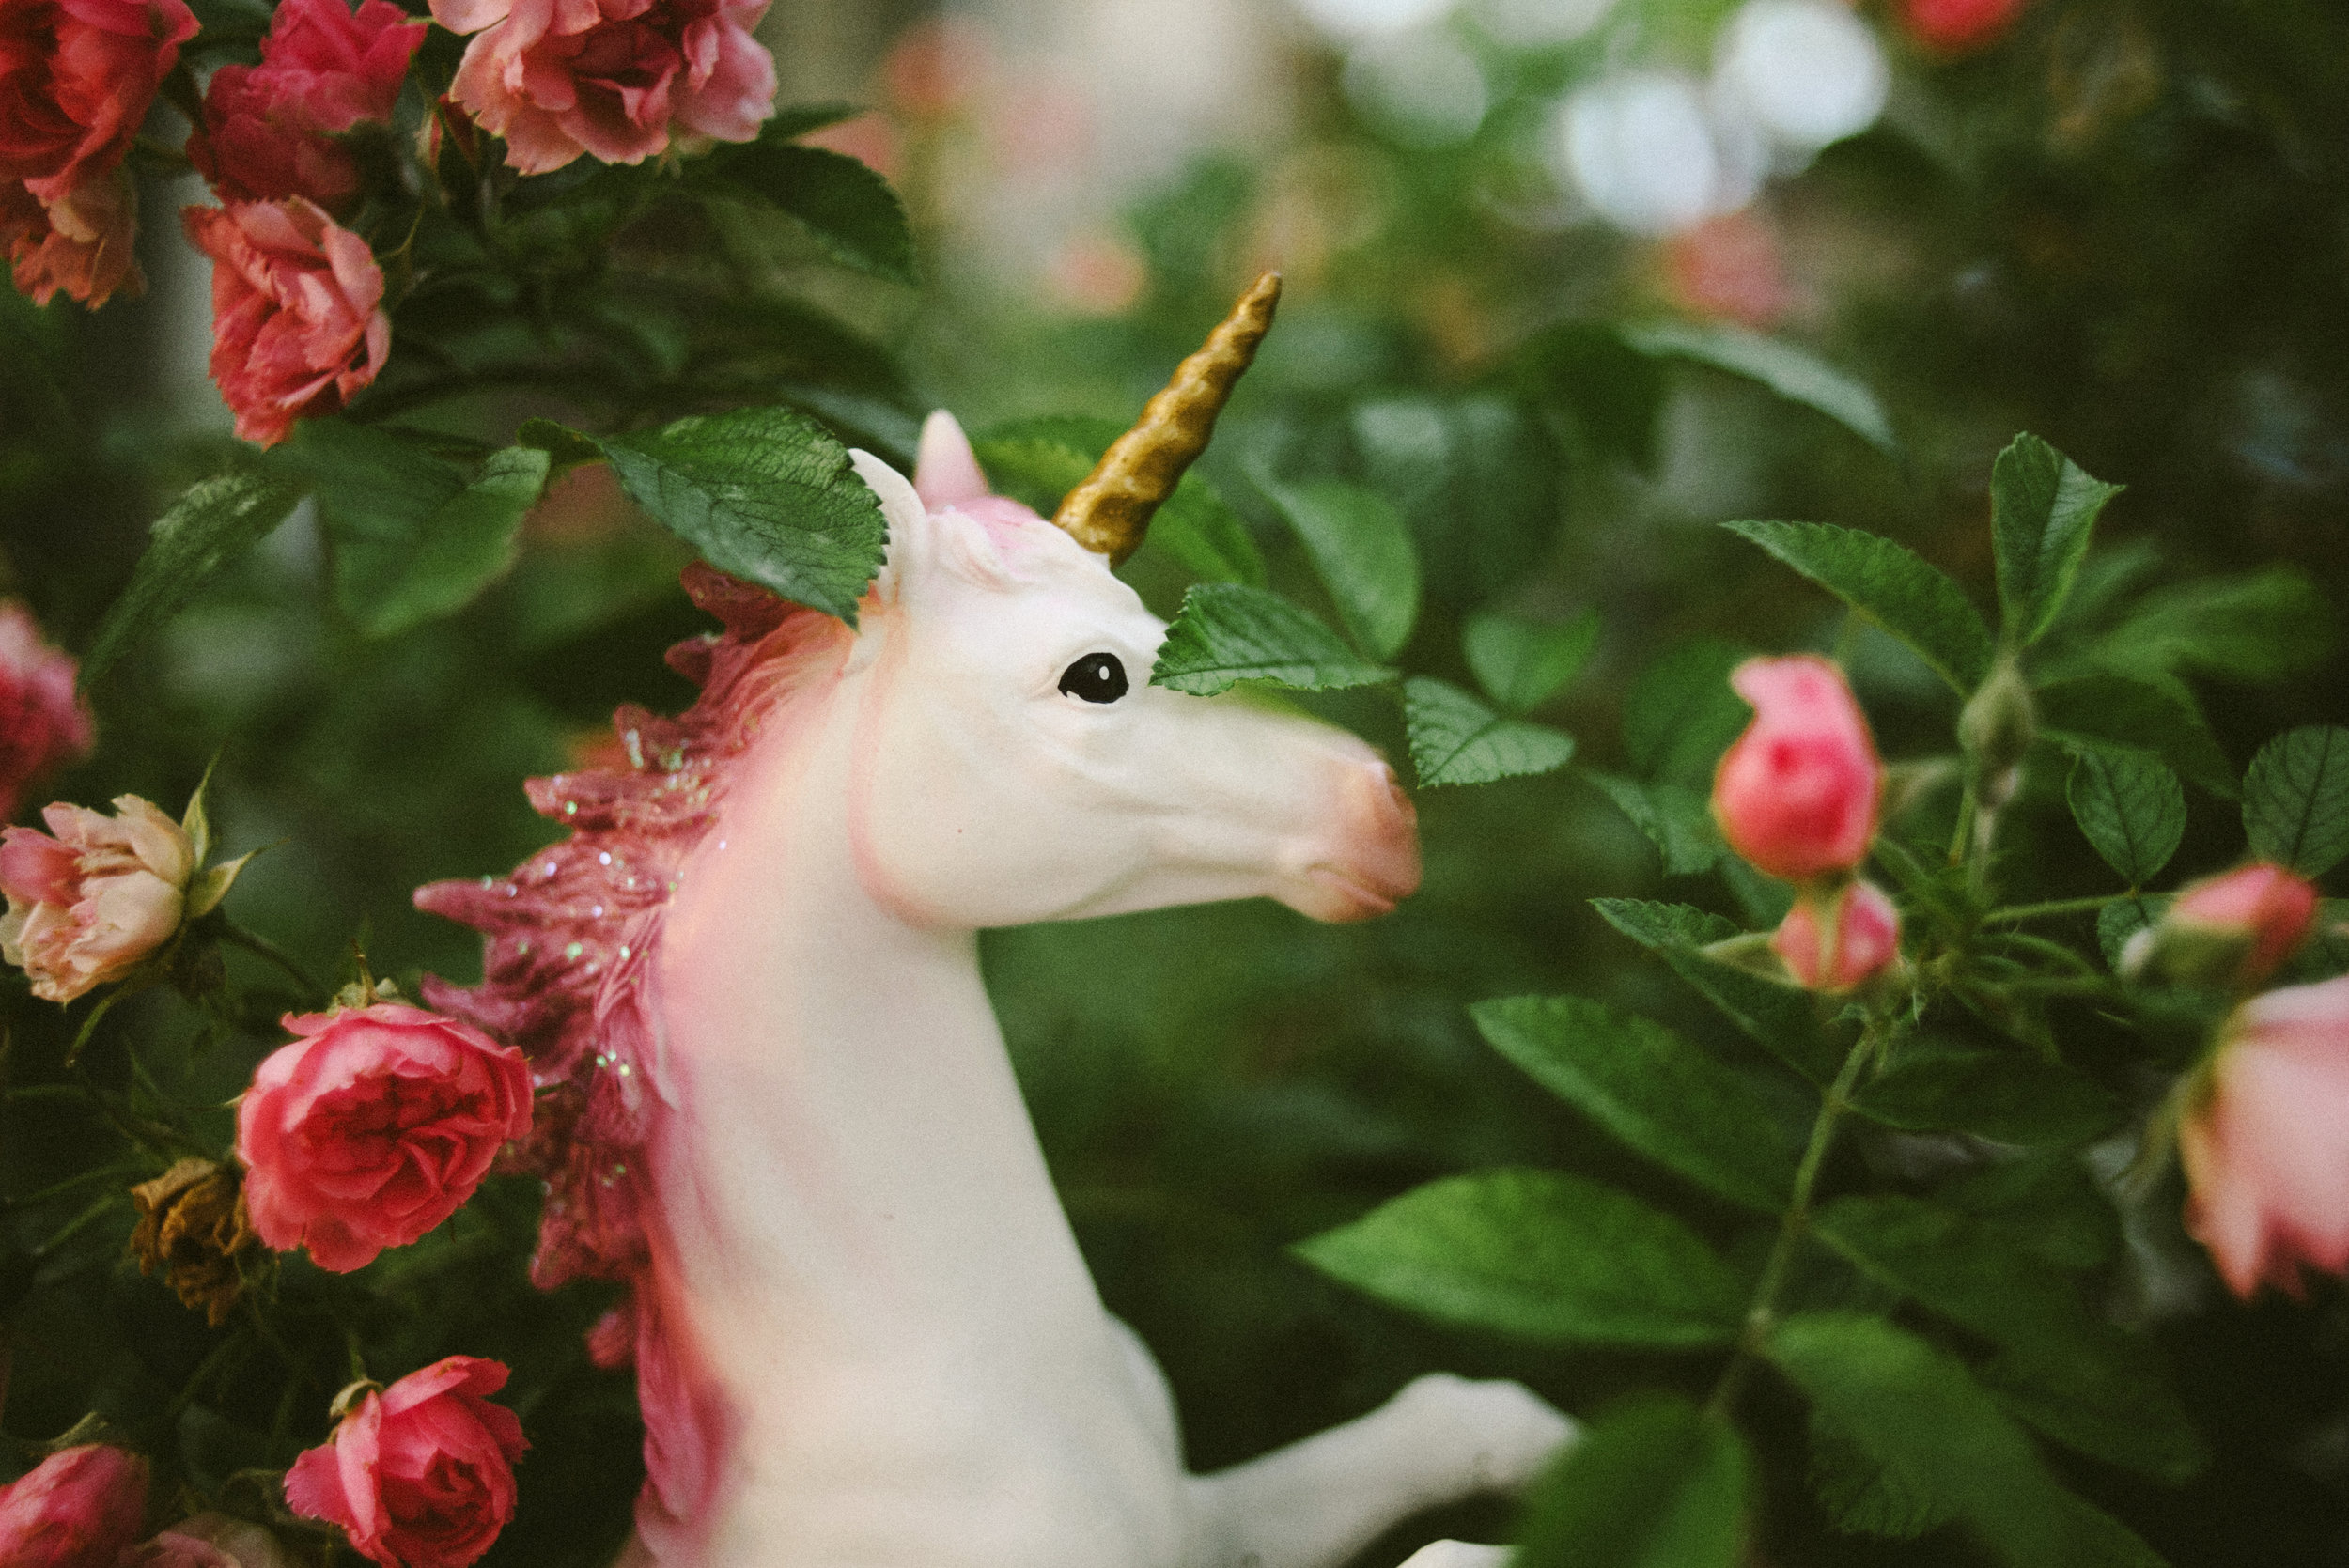 It might look like Cupcake the Unicorn is in a magical fantasy land, but in fact this is just in our neighbor's bushes!